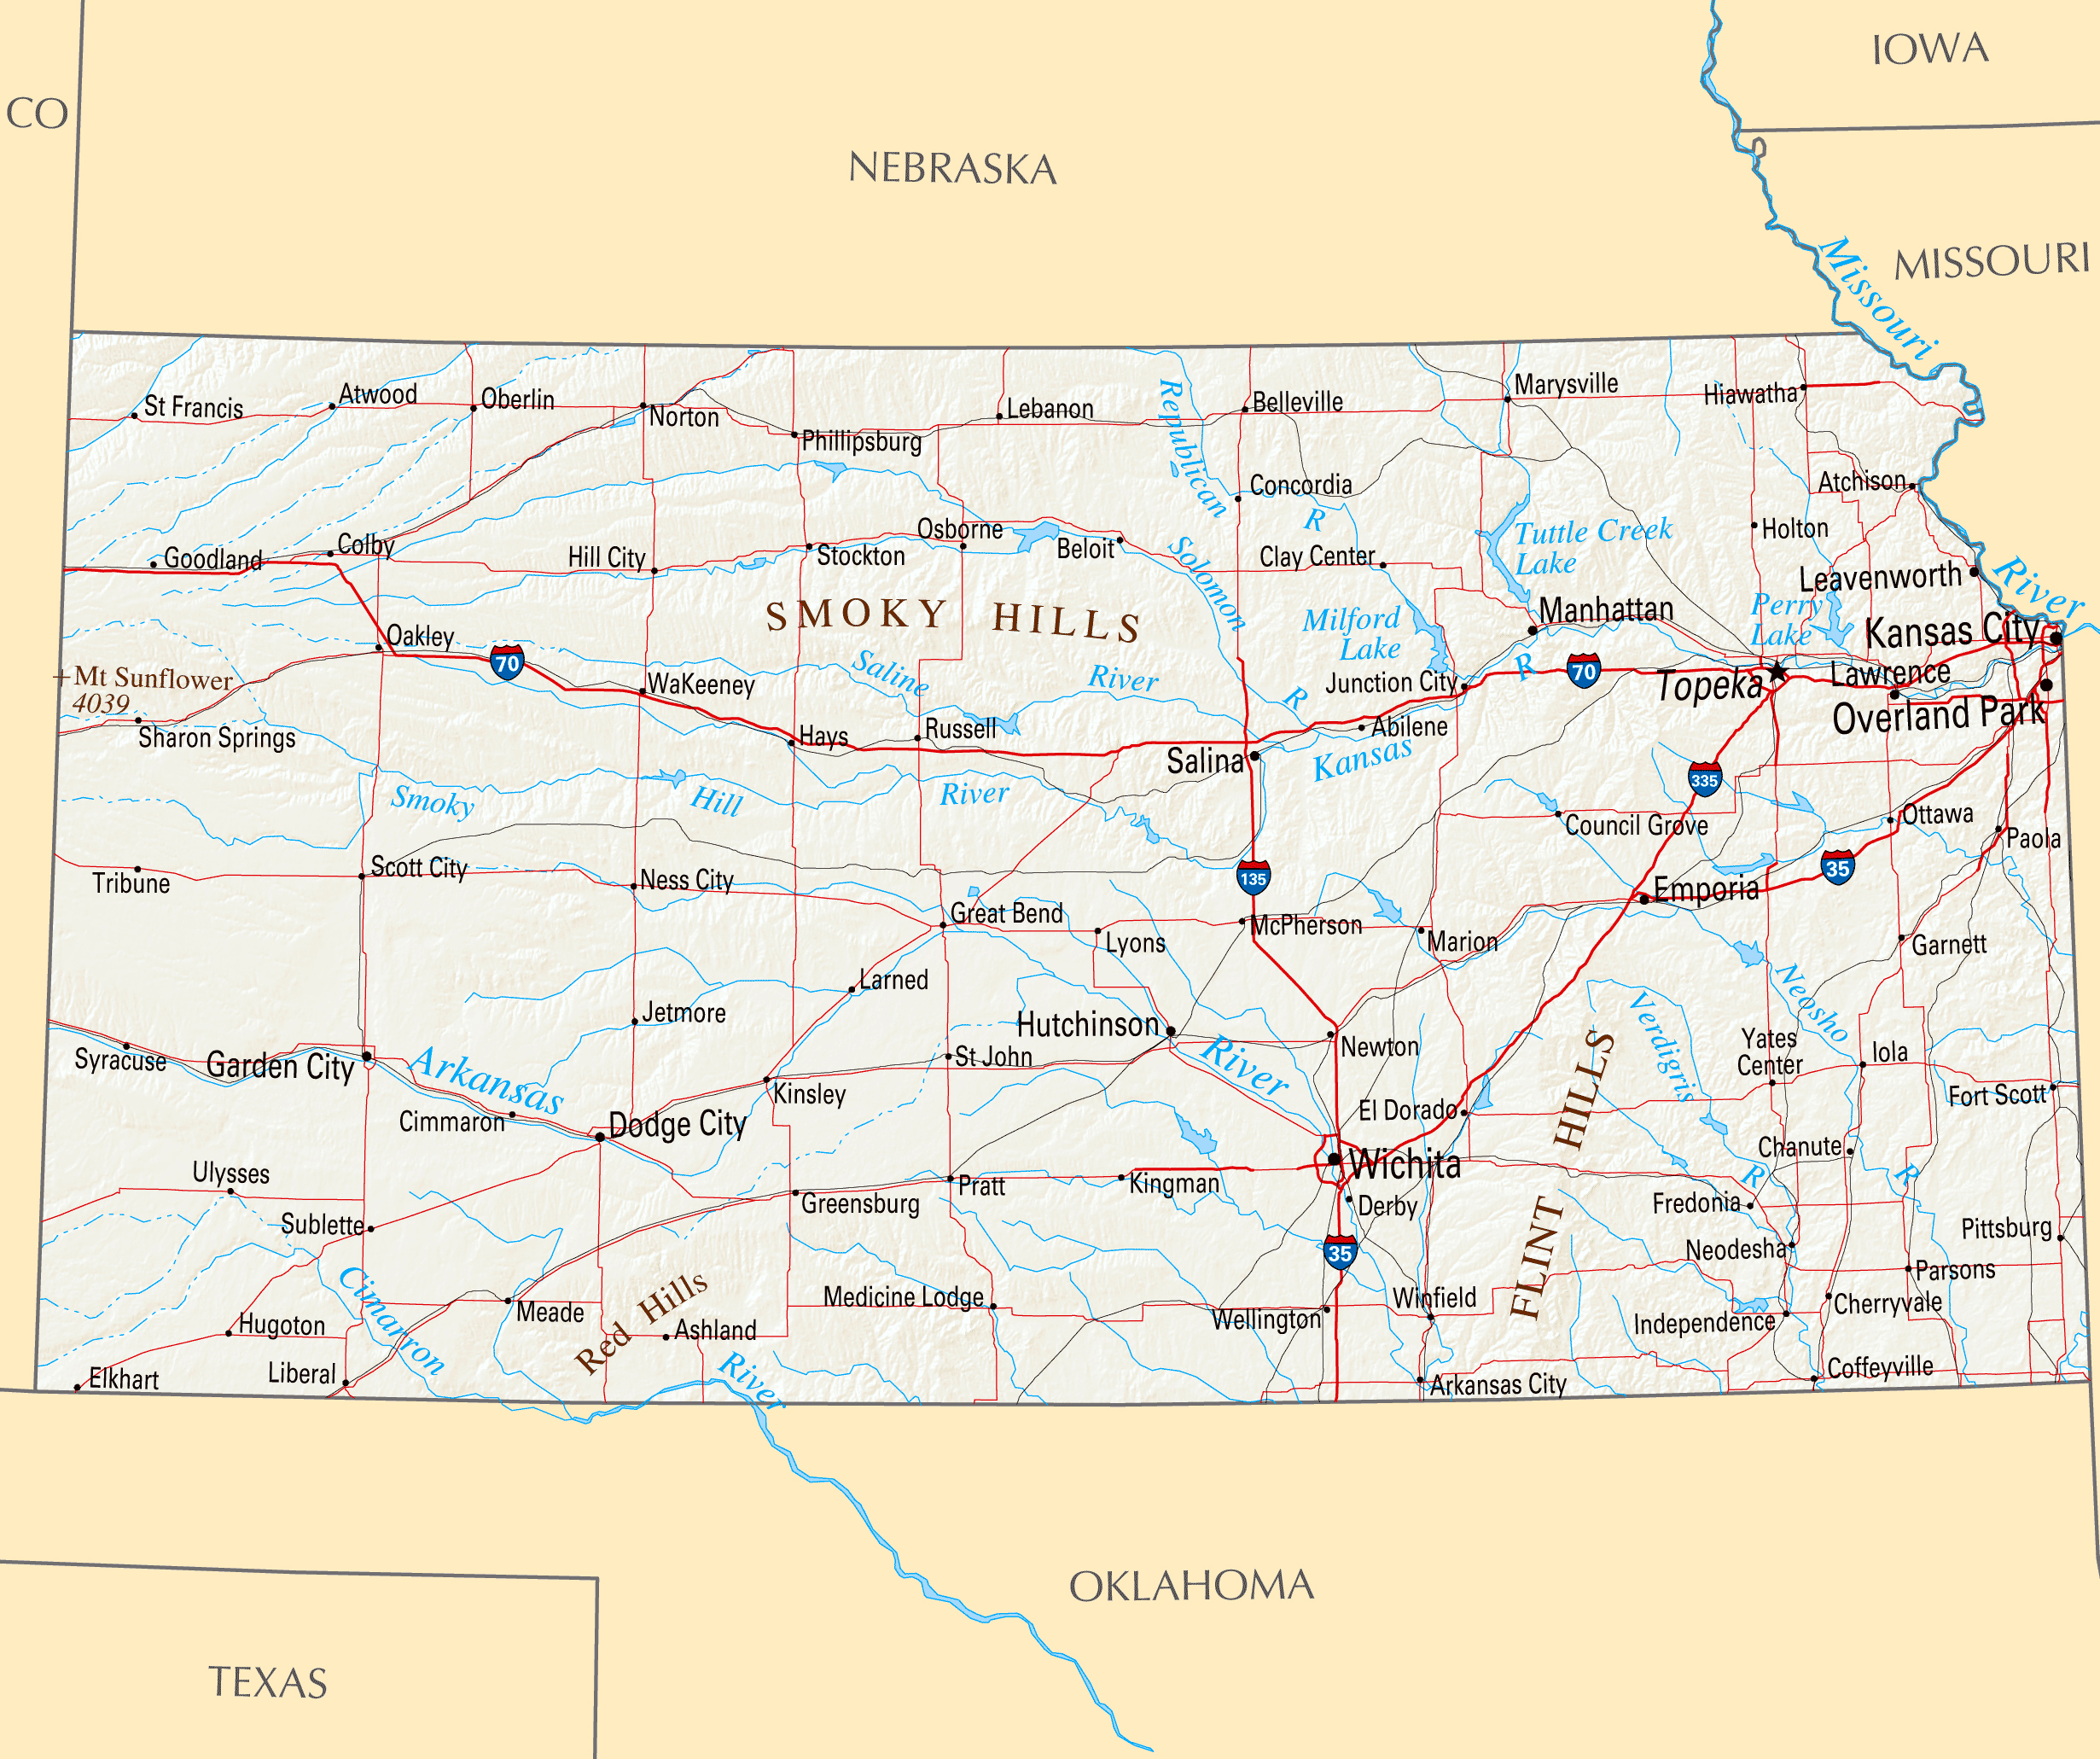 Large Highways Map Of Kansas State With Relief And Major